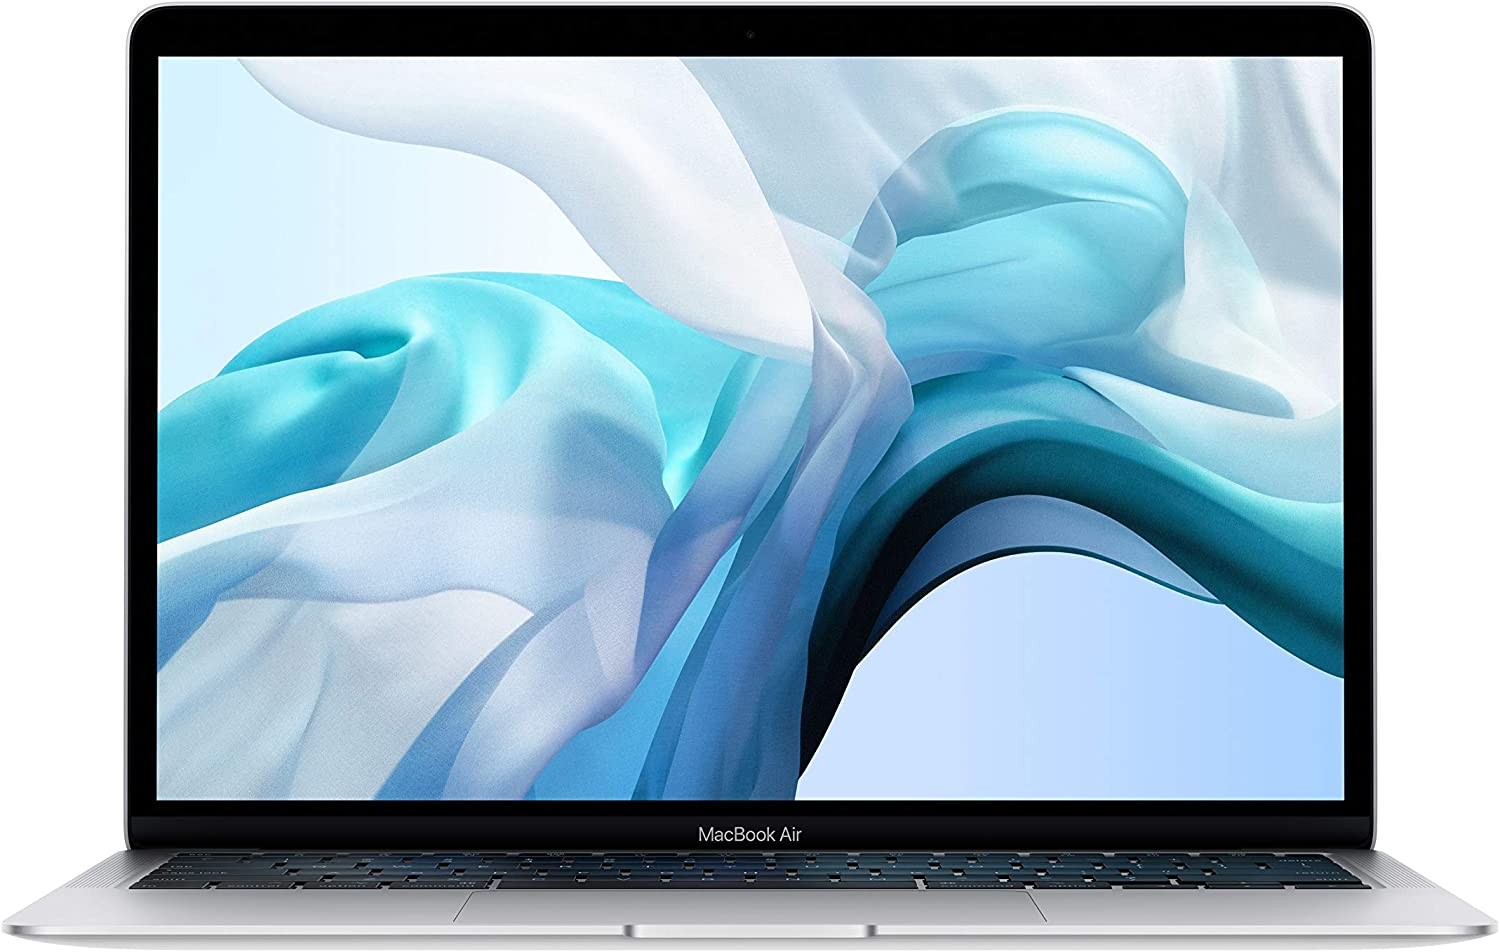 Apple MacBook Air (13-inch, 1.2GHz i7 16GB RAM, 512GB SSD Storage) - Silver (2020 Model) Z0YK0002B